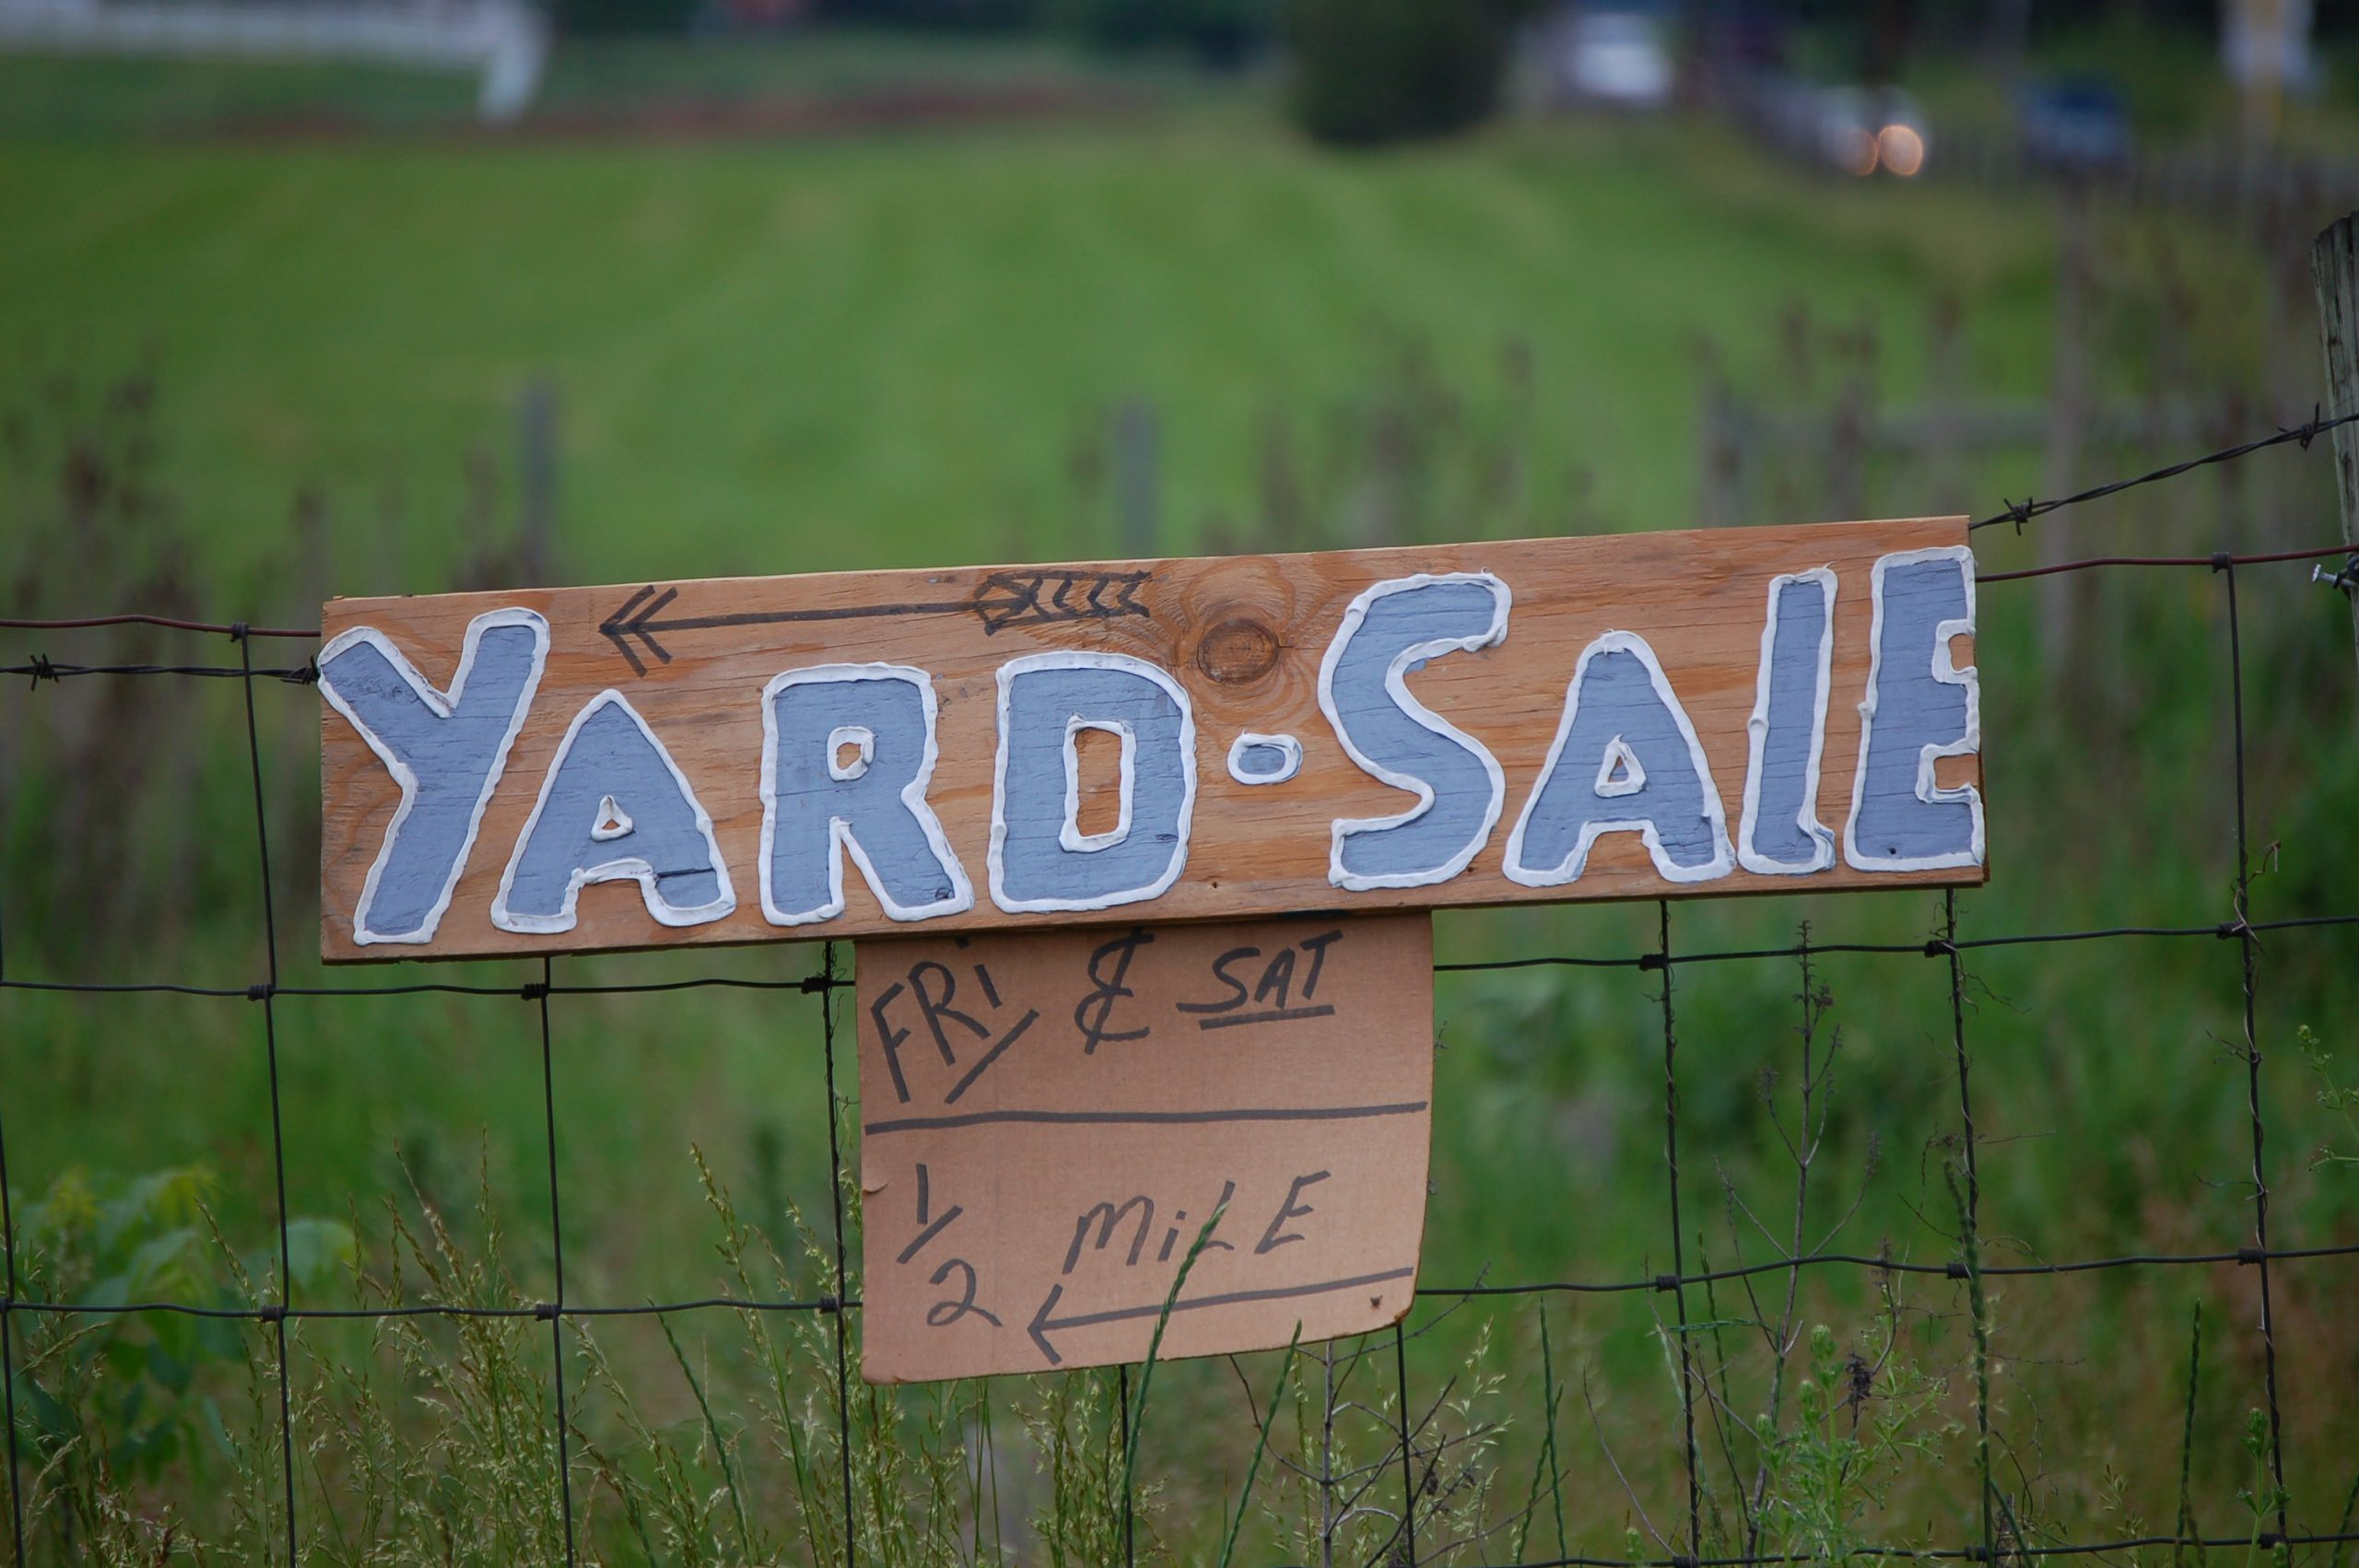 How to plan and organize a yard sale in Euless?